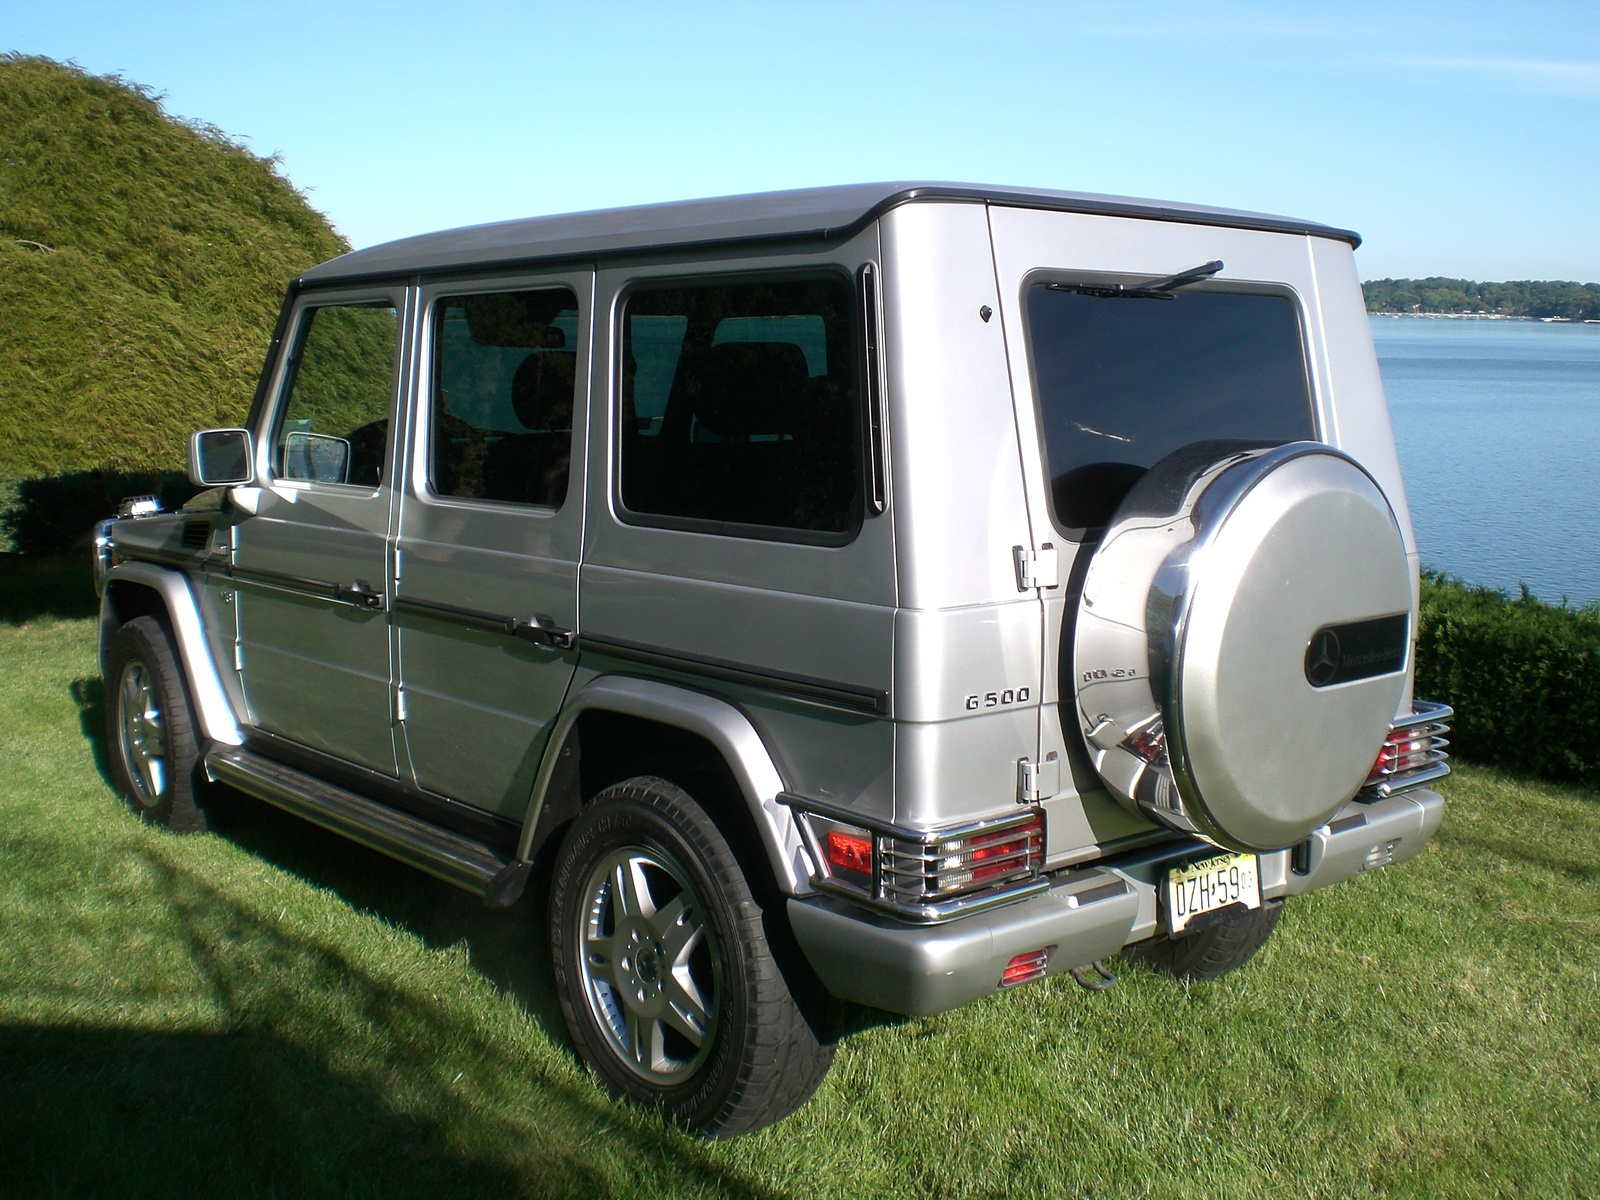 2002 mercedes benz g class image 10 for 2002 mercedes benz suv